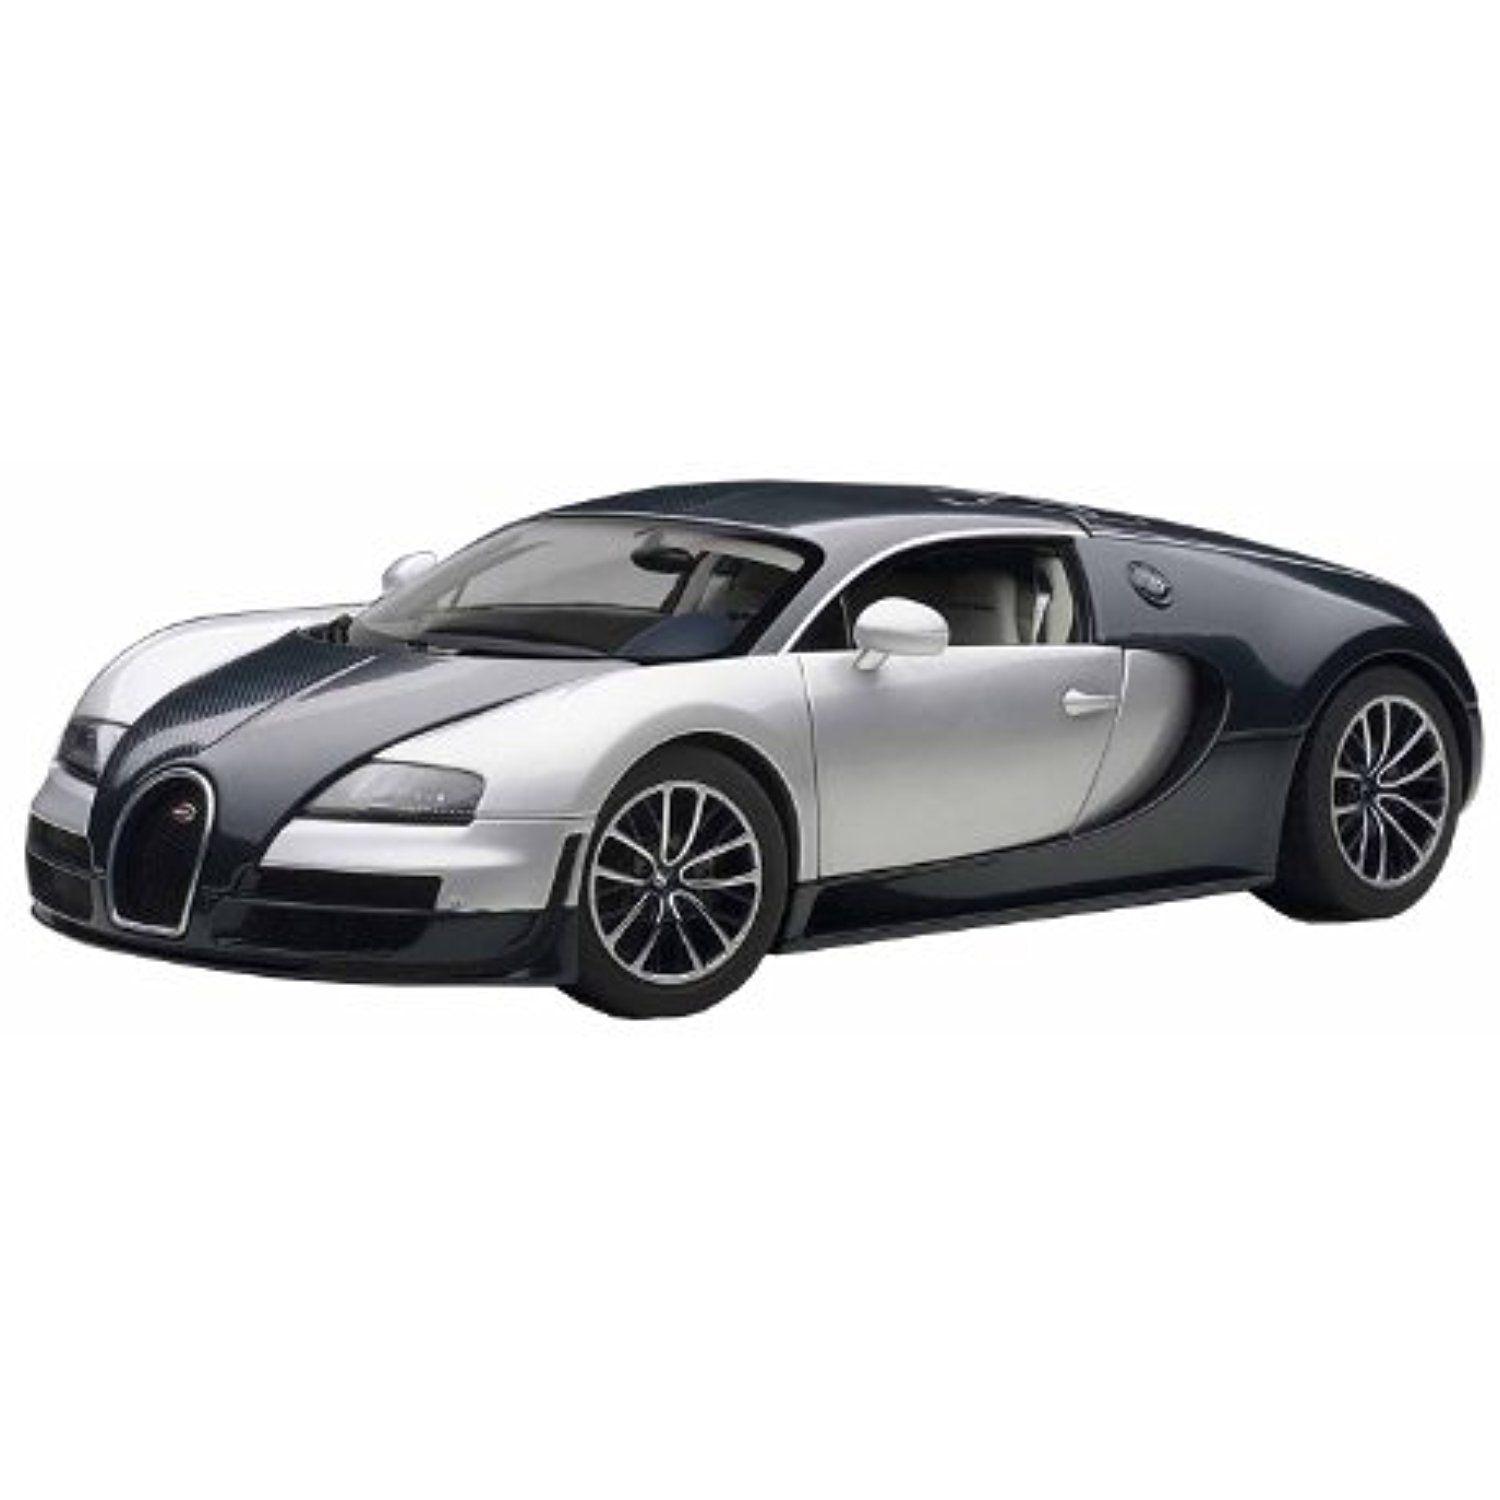 Blue Bugatti Veyron Super Sport: Pin On Toy Remote Control & Play Vehicles